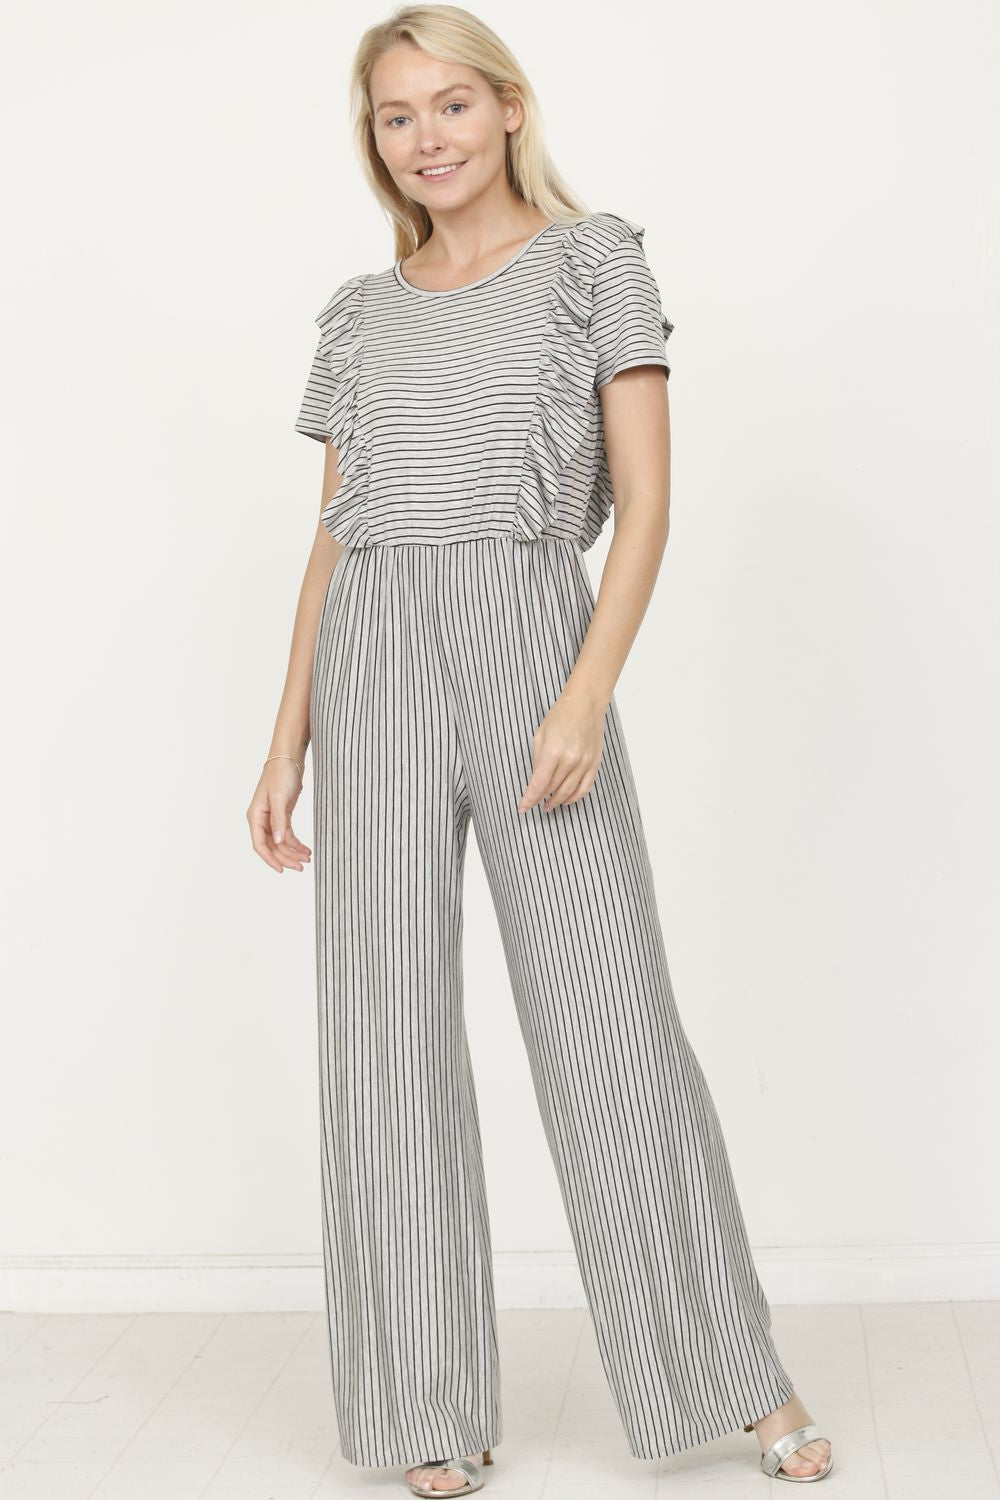 Grey & Black Stripe Short Sleeve Jumpsuit with Ruffle